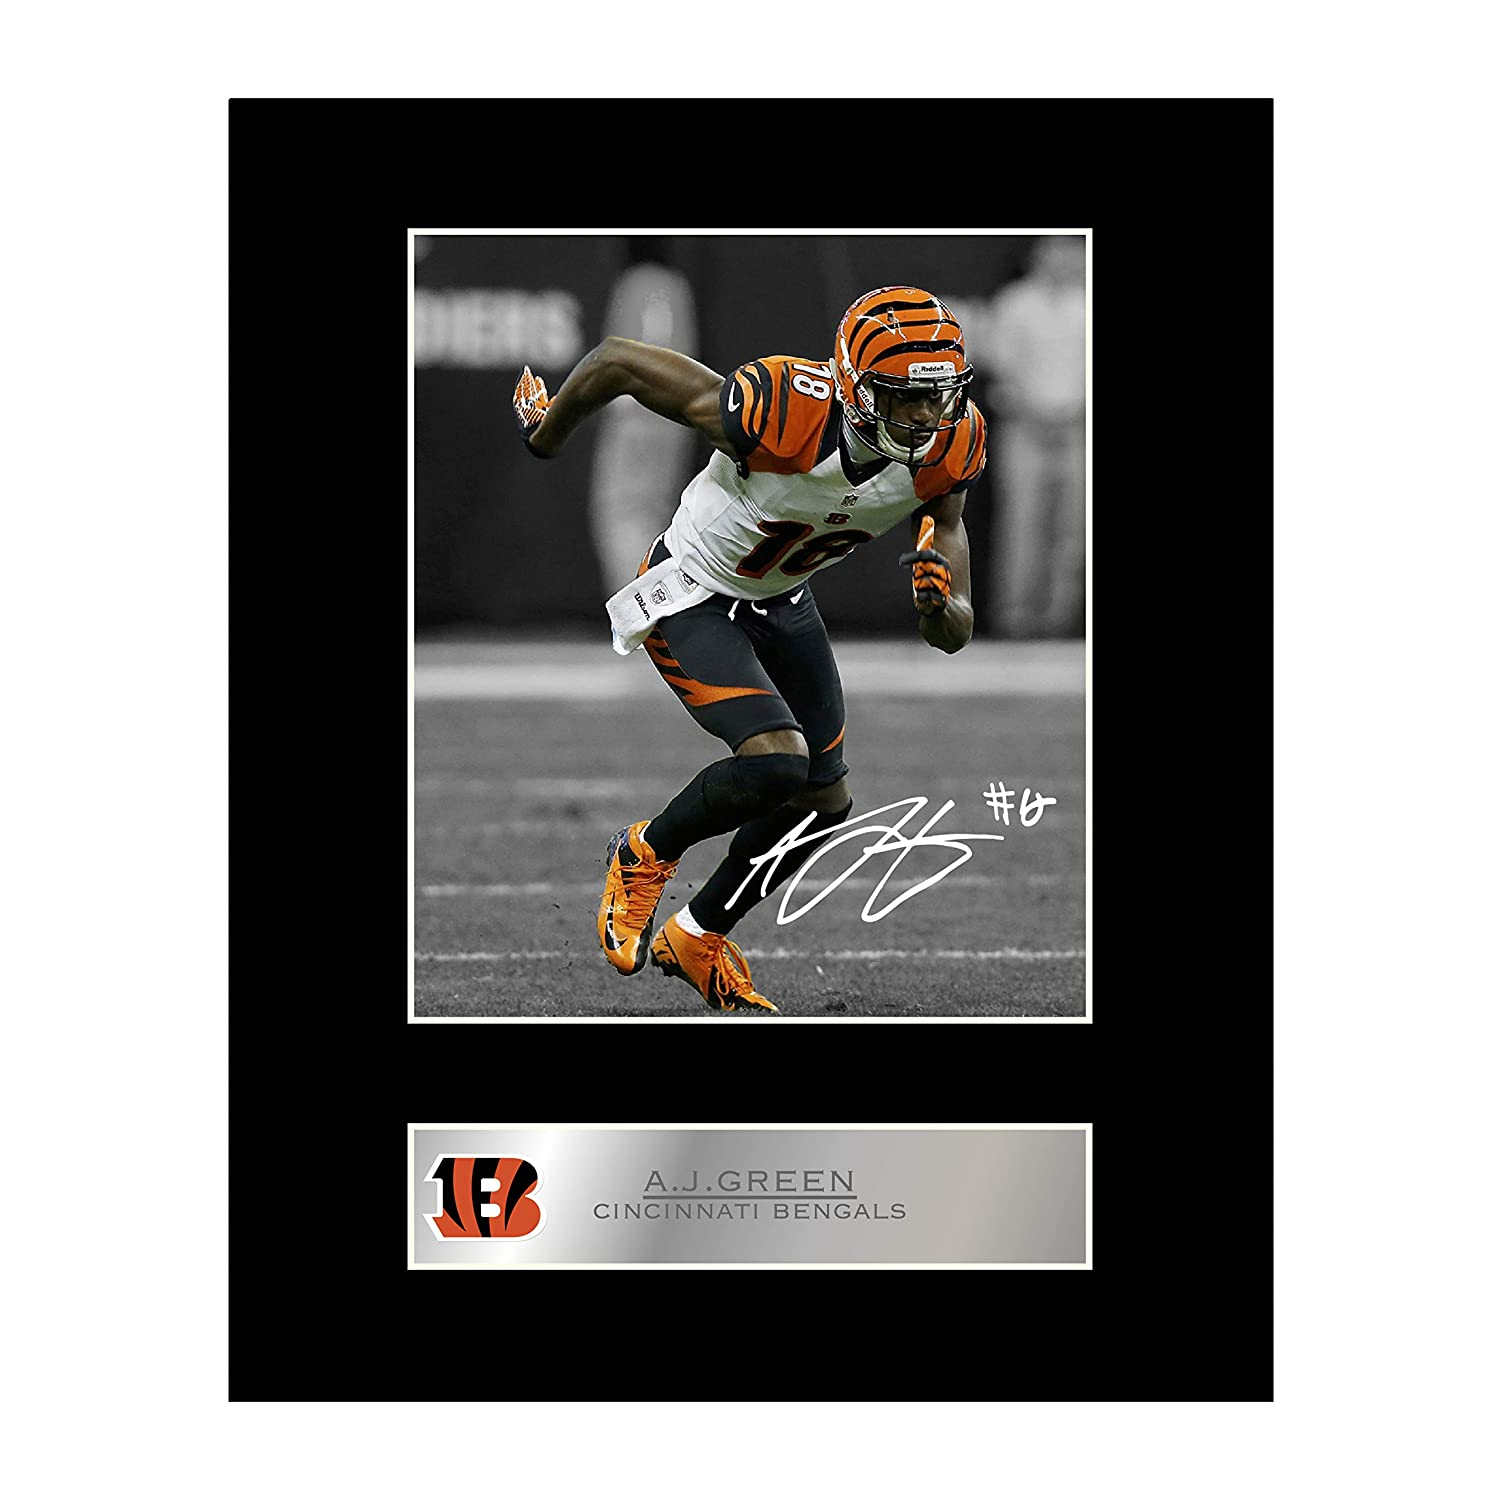 J Green Signed Mounted Photo Display Cincinnati Bengals #1 Autographed Gift Picture Print iconic pic A